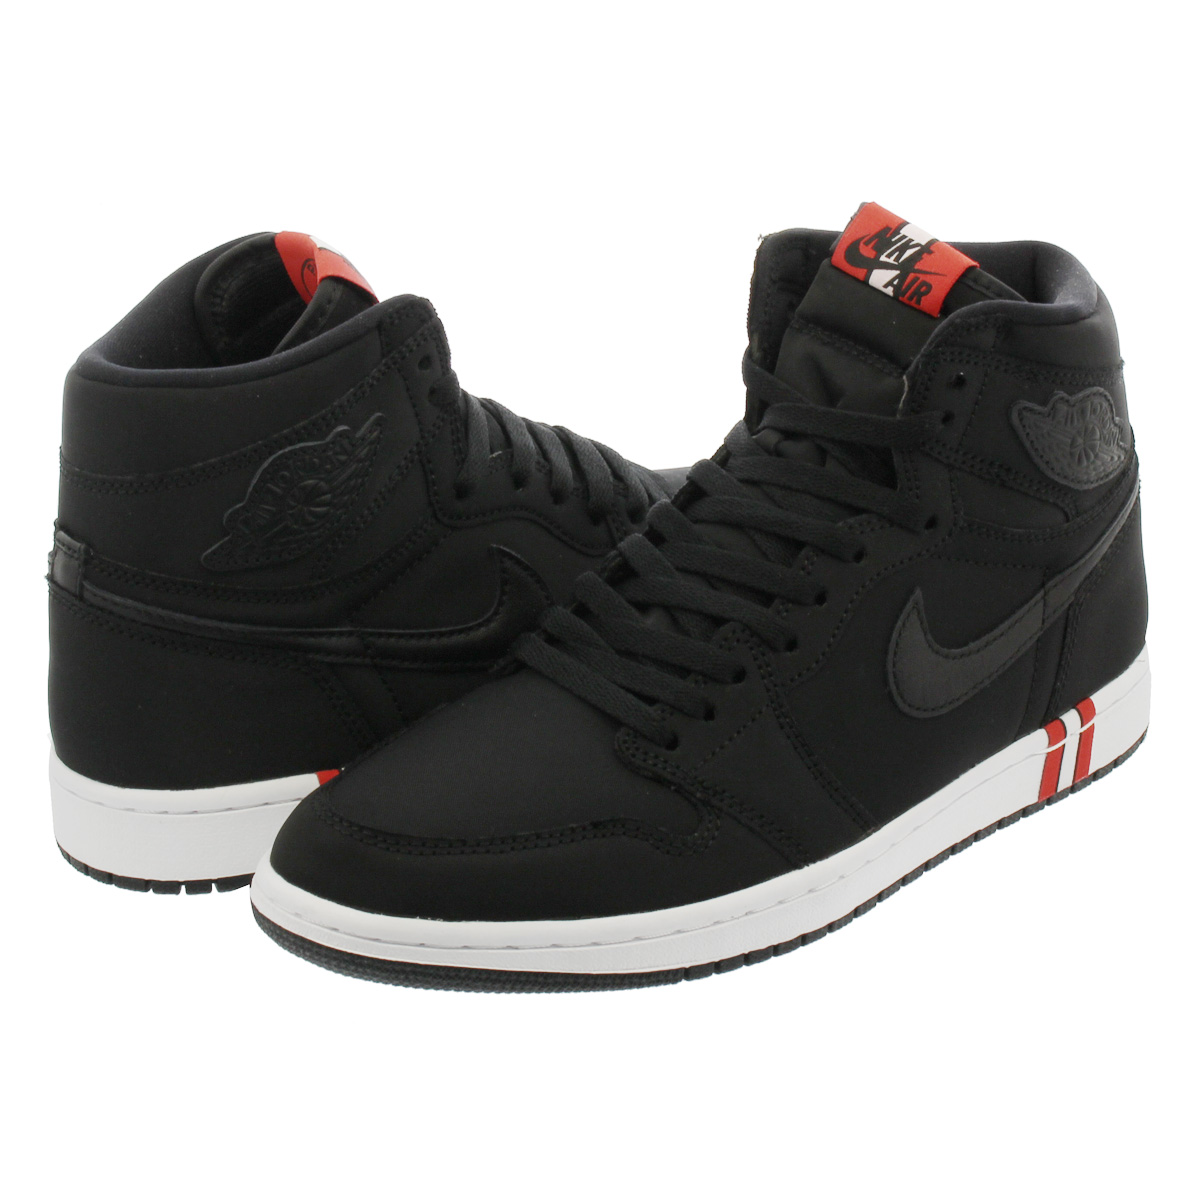 LOWTEX BIG-SMALL SHOP  NIKE AIR JORDAN 1 RETRO HIGH OG BCFC Nike Air Jordan  1 nostalgic high OG BLACK WHITE CHALLENGE RED ar3254-001  66e9af7b0